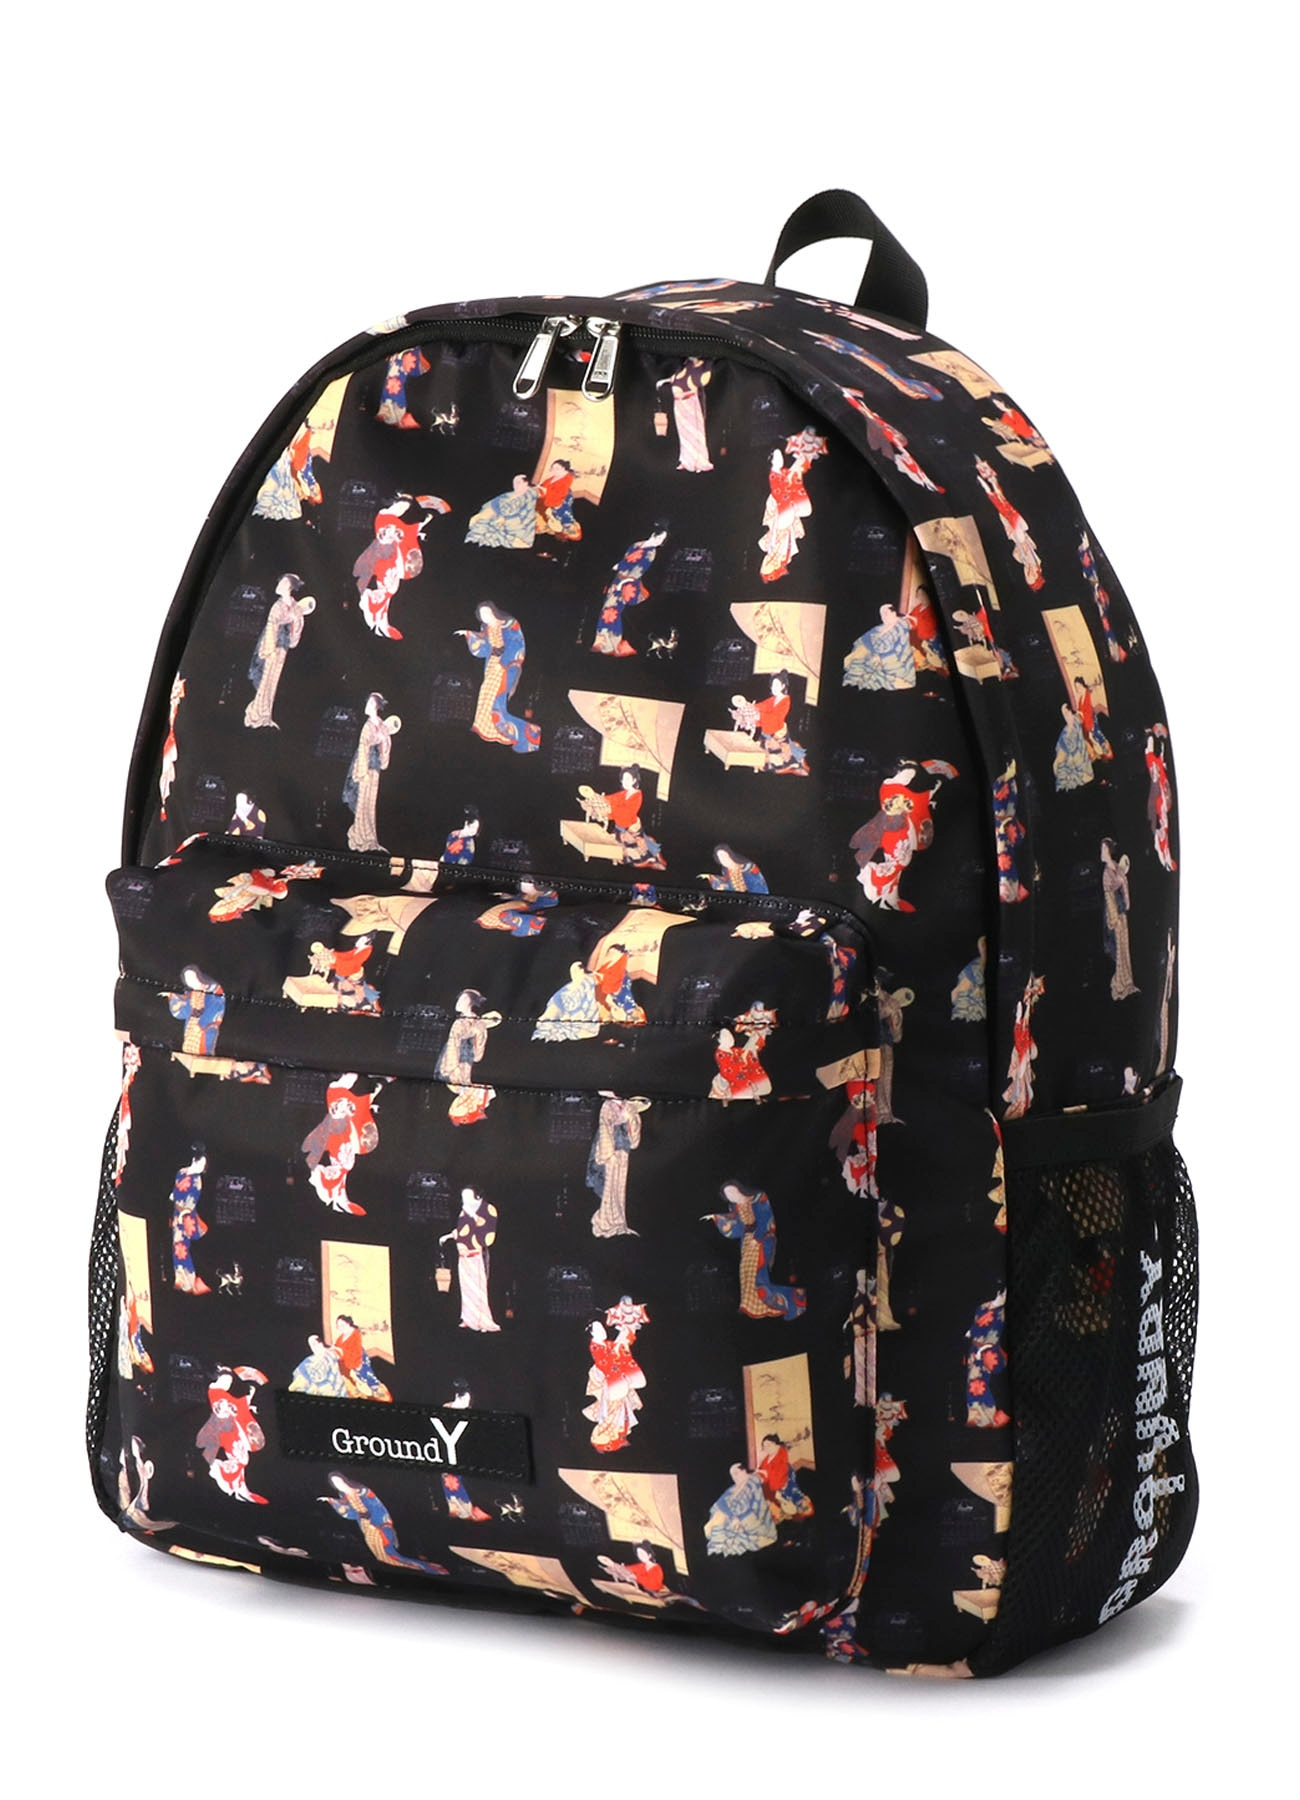 Kawanabe Kyosai-Kawanabe Kyosai-Collaboration Backpack